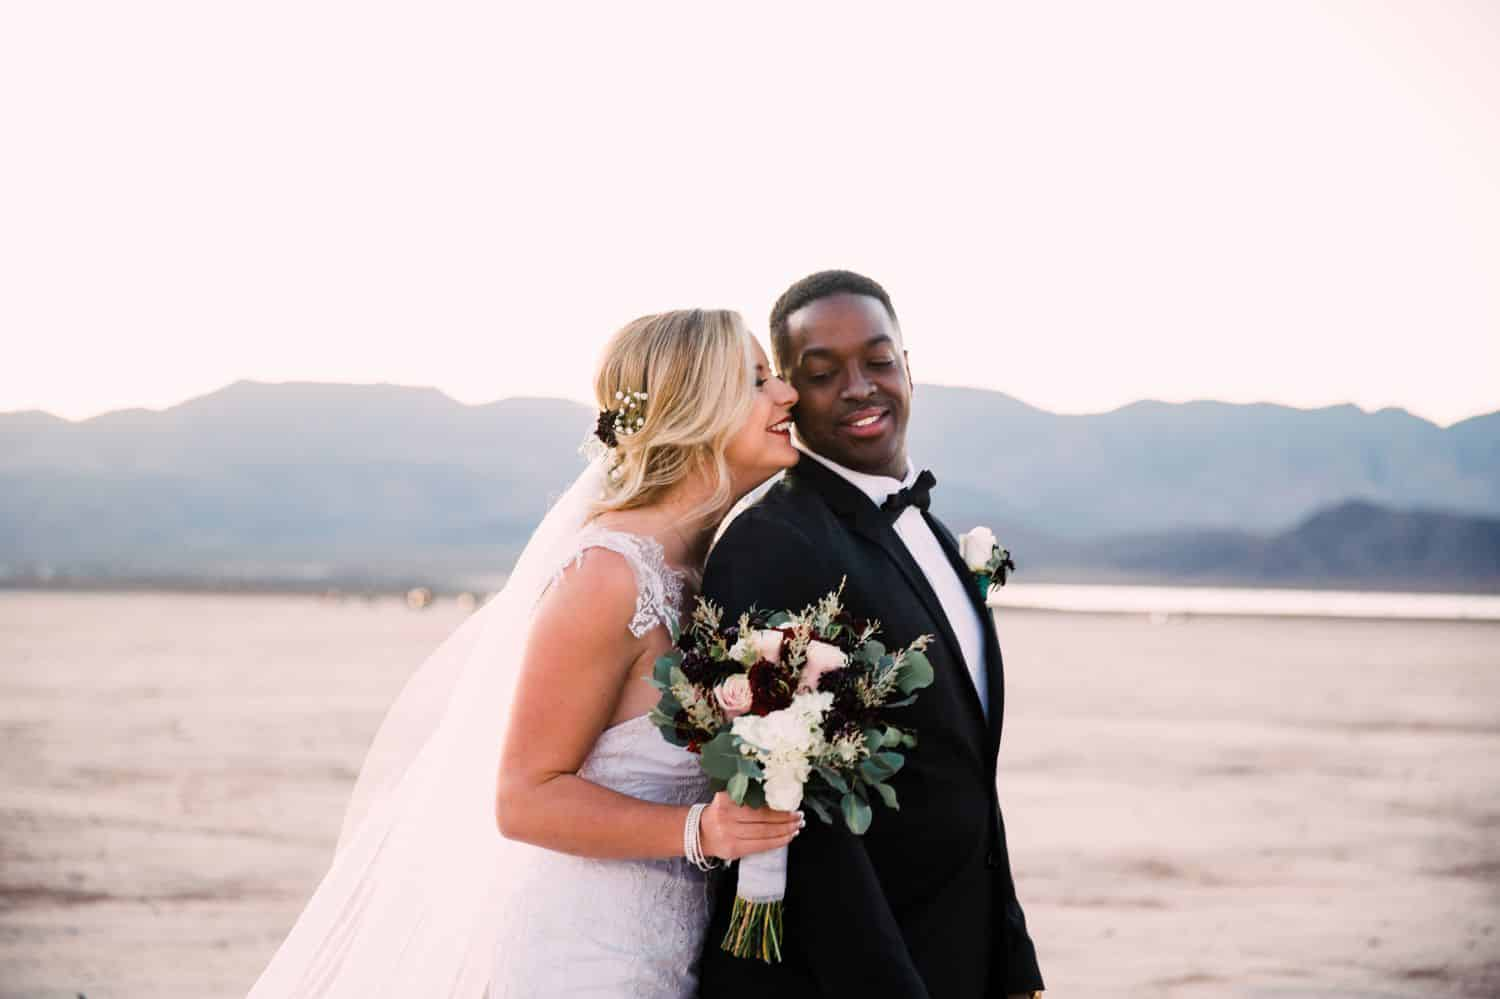 A bride stands behind the groom and kisses him on the cheek during their desert wedding